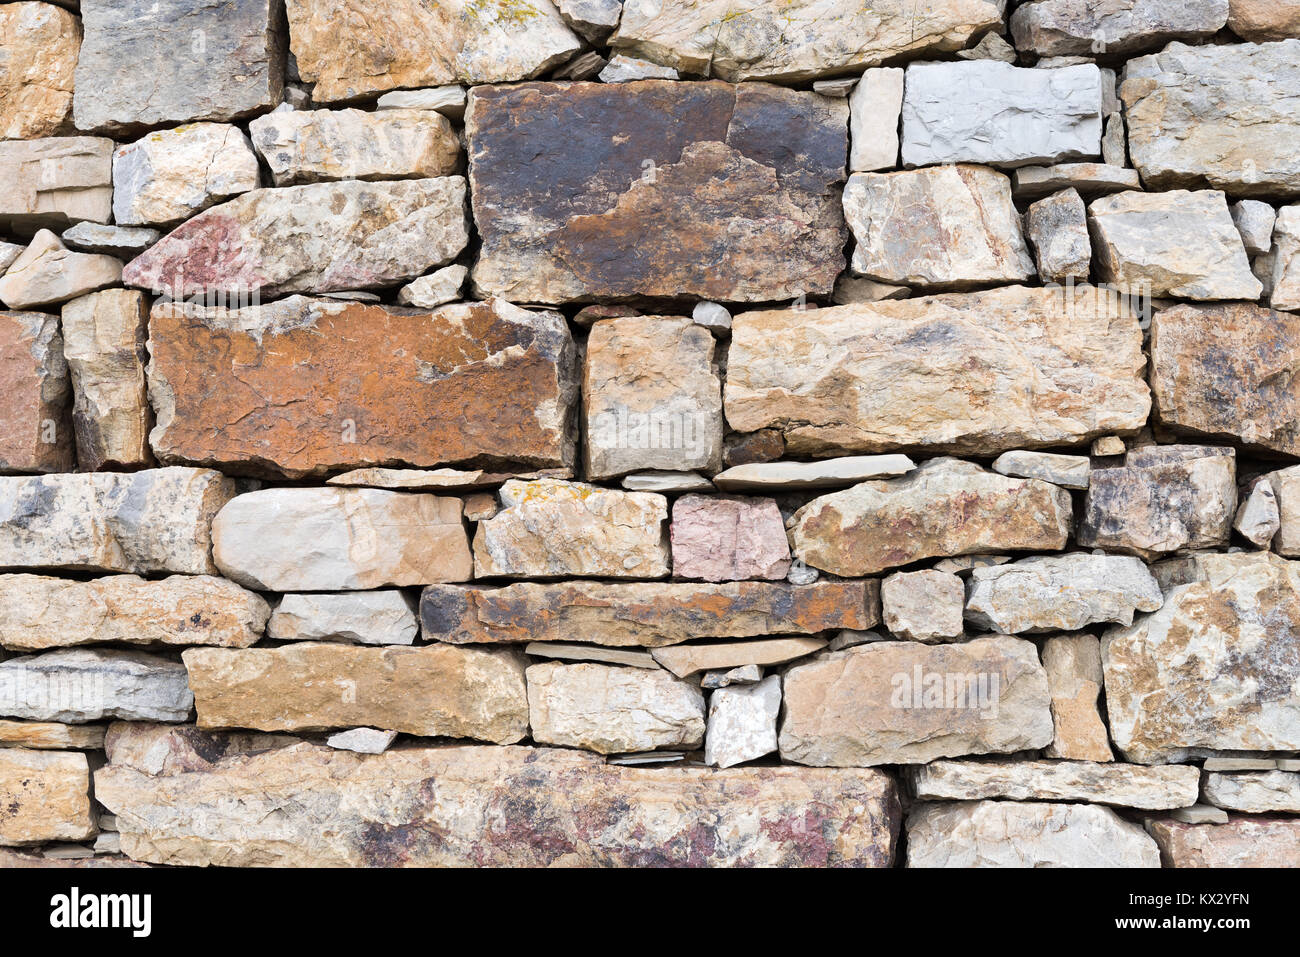 Section of dry stone wall made of various sized stones - Stock Image